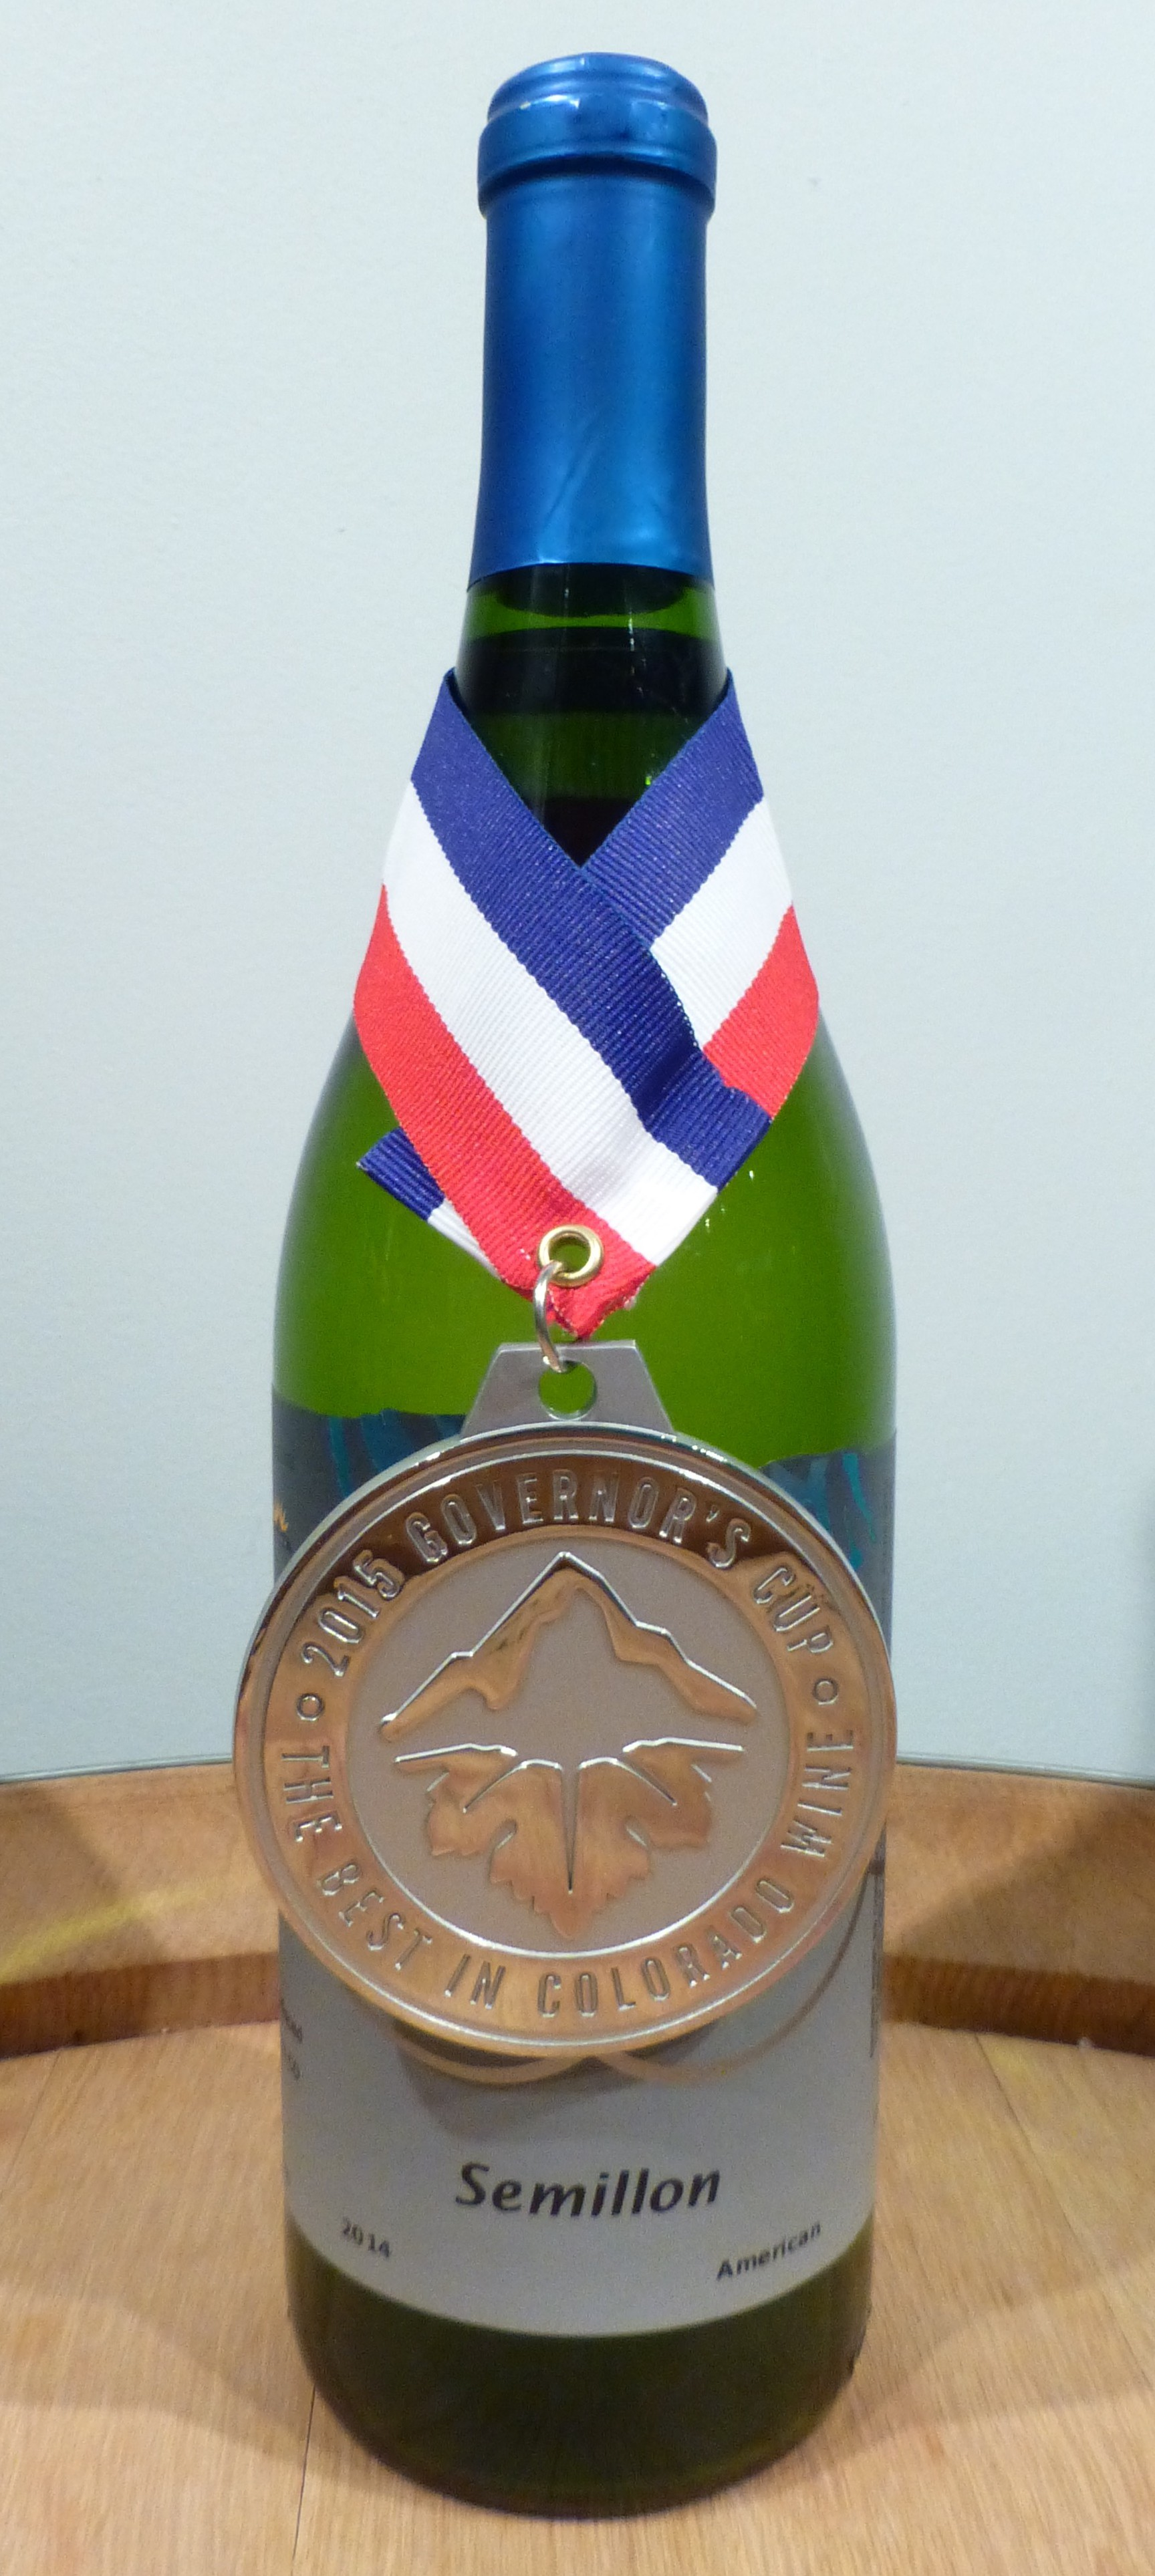 Semillon 2015 Governors Cup winner